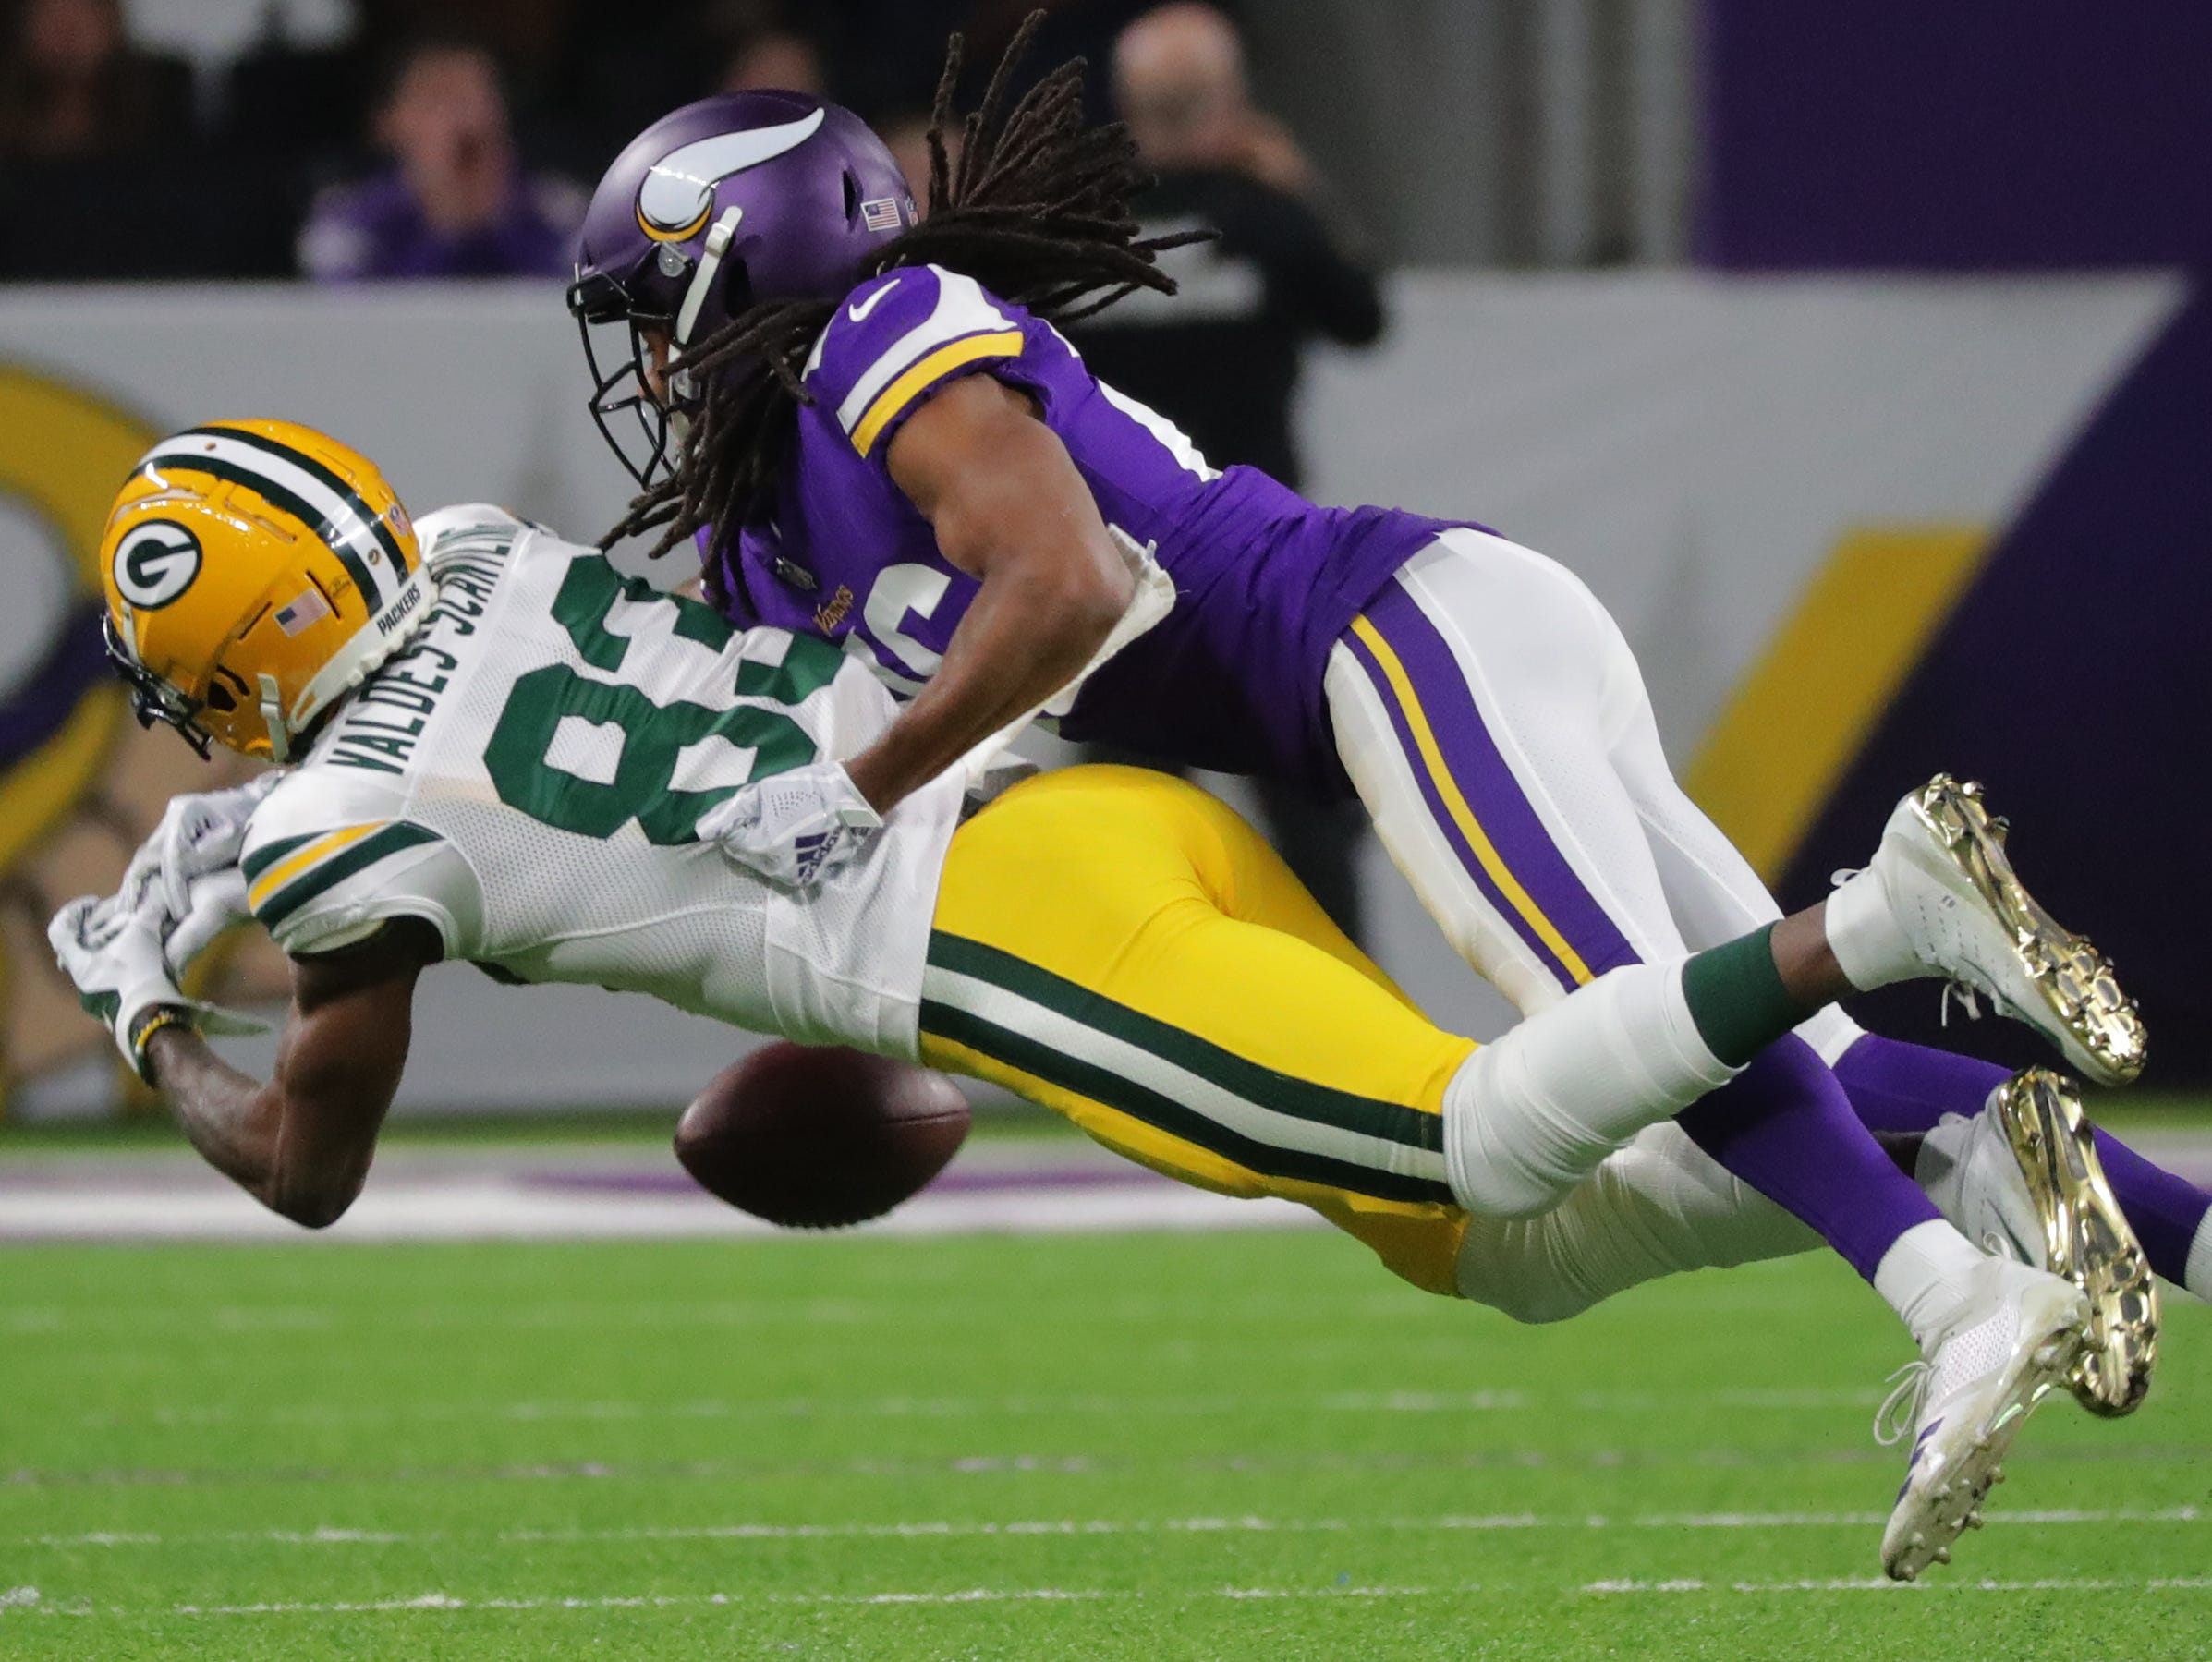 Green Bay Packers wide receiver Marquez Valdes-Scantling (83) is unable to catch a ball while being covered by Minnesota Vikings cornerback Trae Waynes (26) during the first quarter of their game against the Minnesota Vikings Sunday, November 25, 2018 at U.S. Bank Stadium in Minneapolis, Minn.MARK HOFFMAN/MHOFFMAN@JOURNALSENTINEL.COM